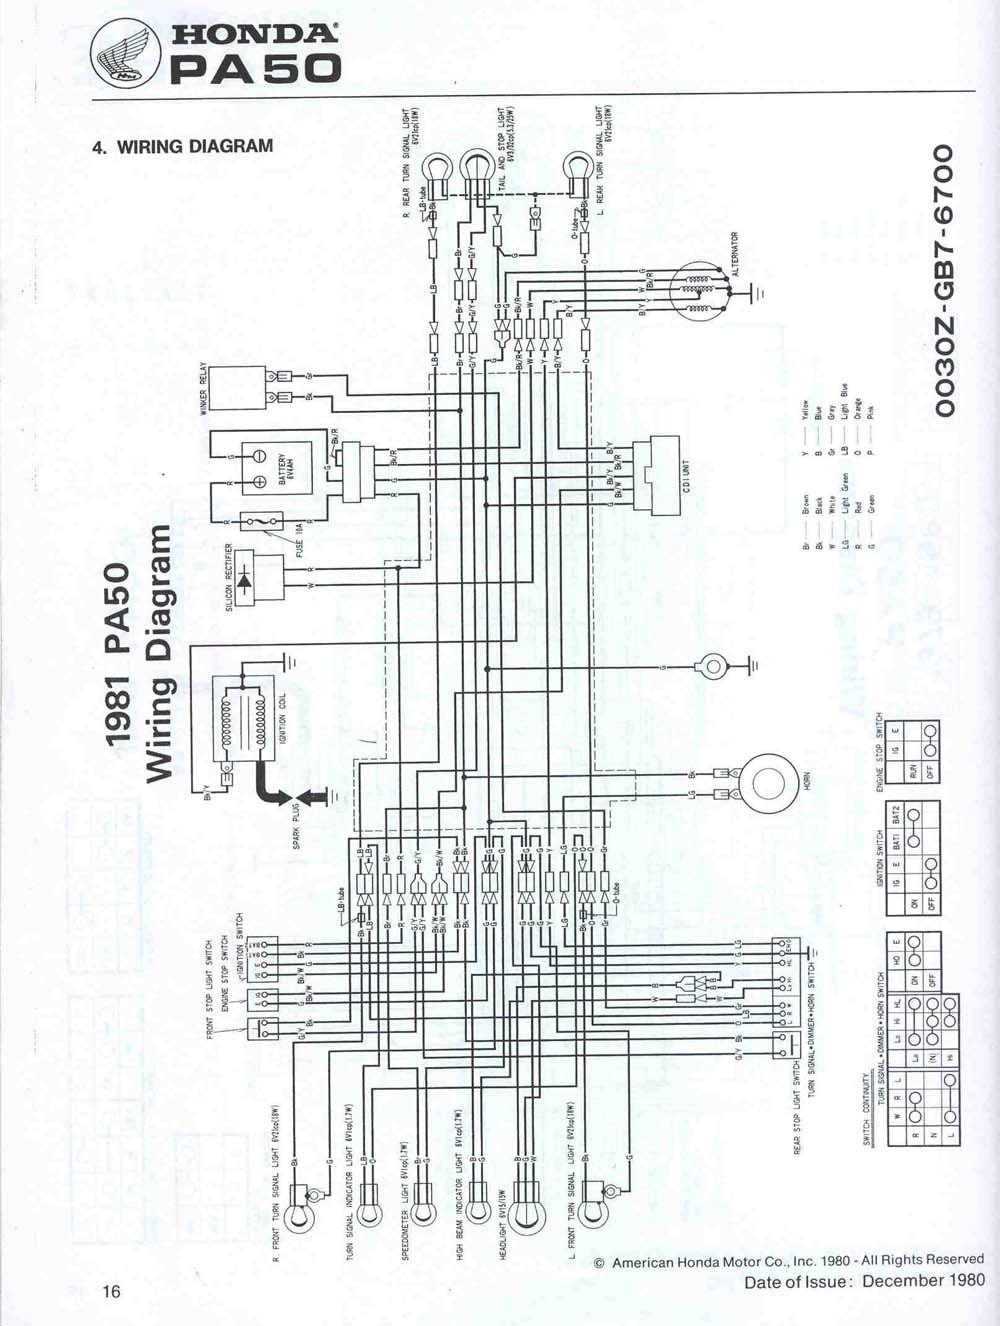 Cdi 114-4953 Wiring Diagram